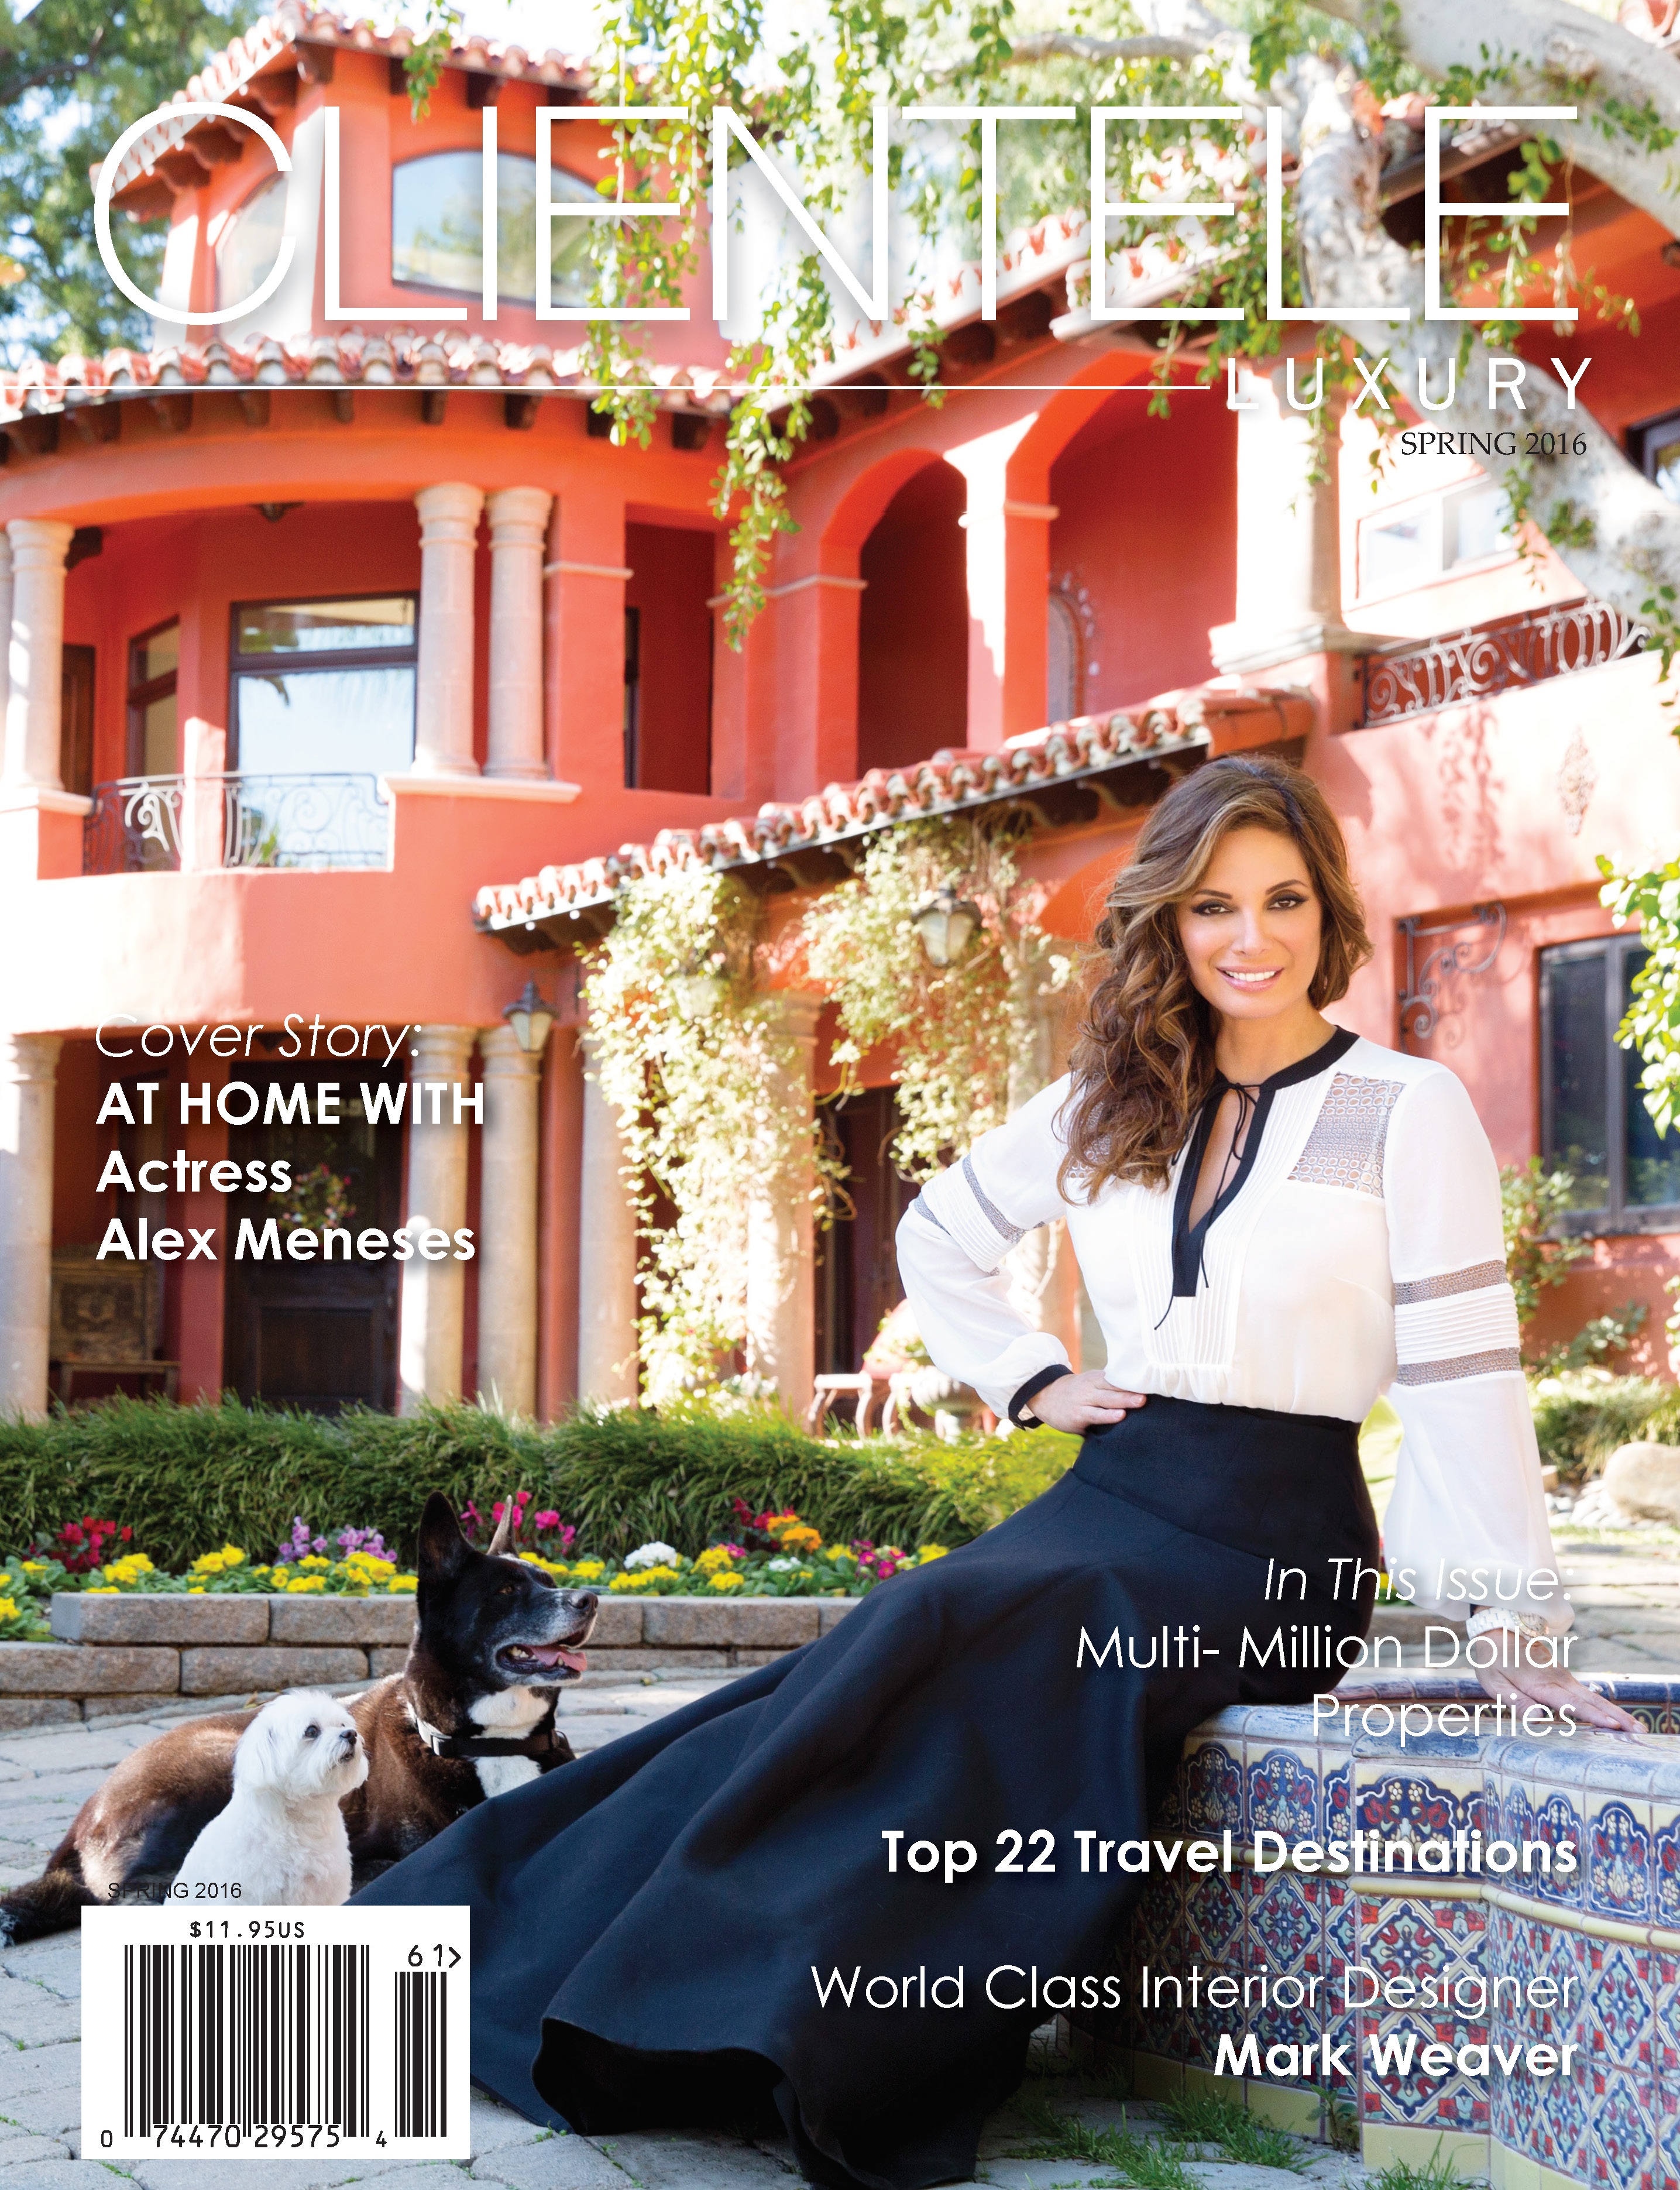 Alex Meneses Cover – Styled by TOD HALLMAN